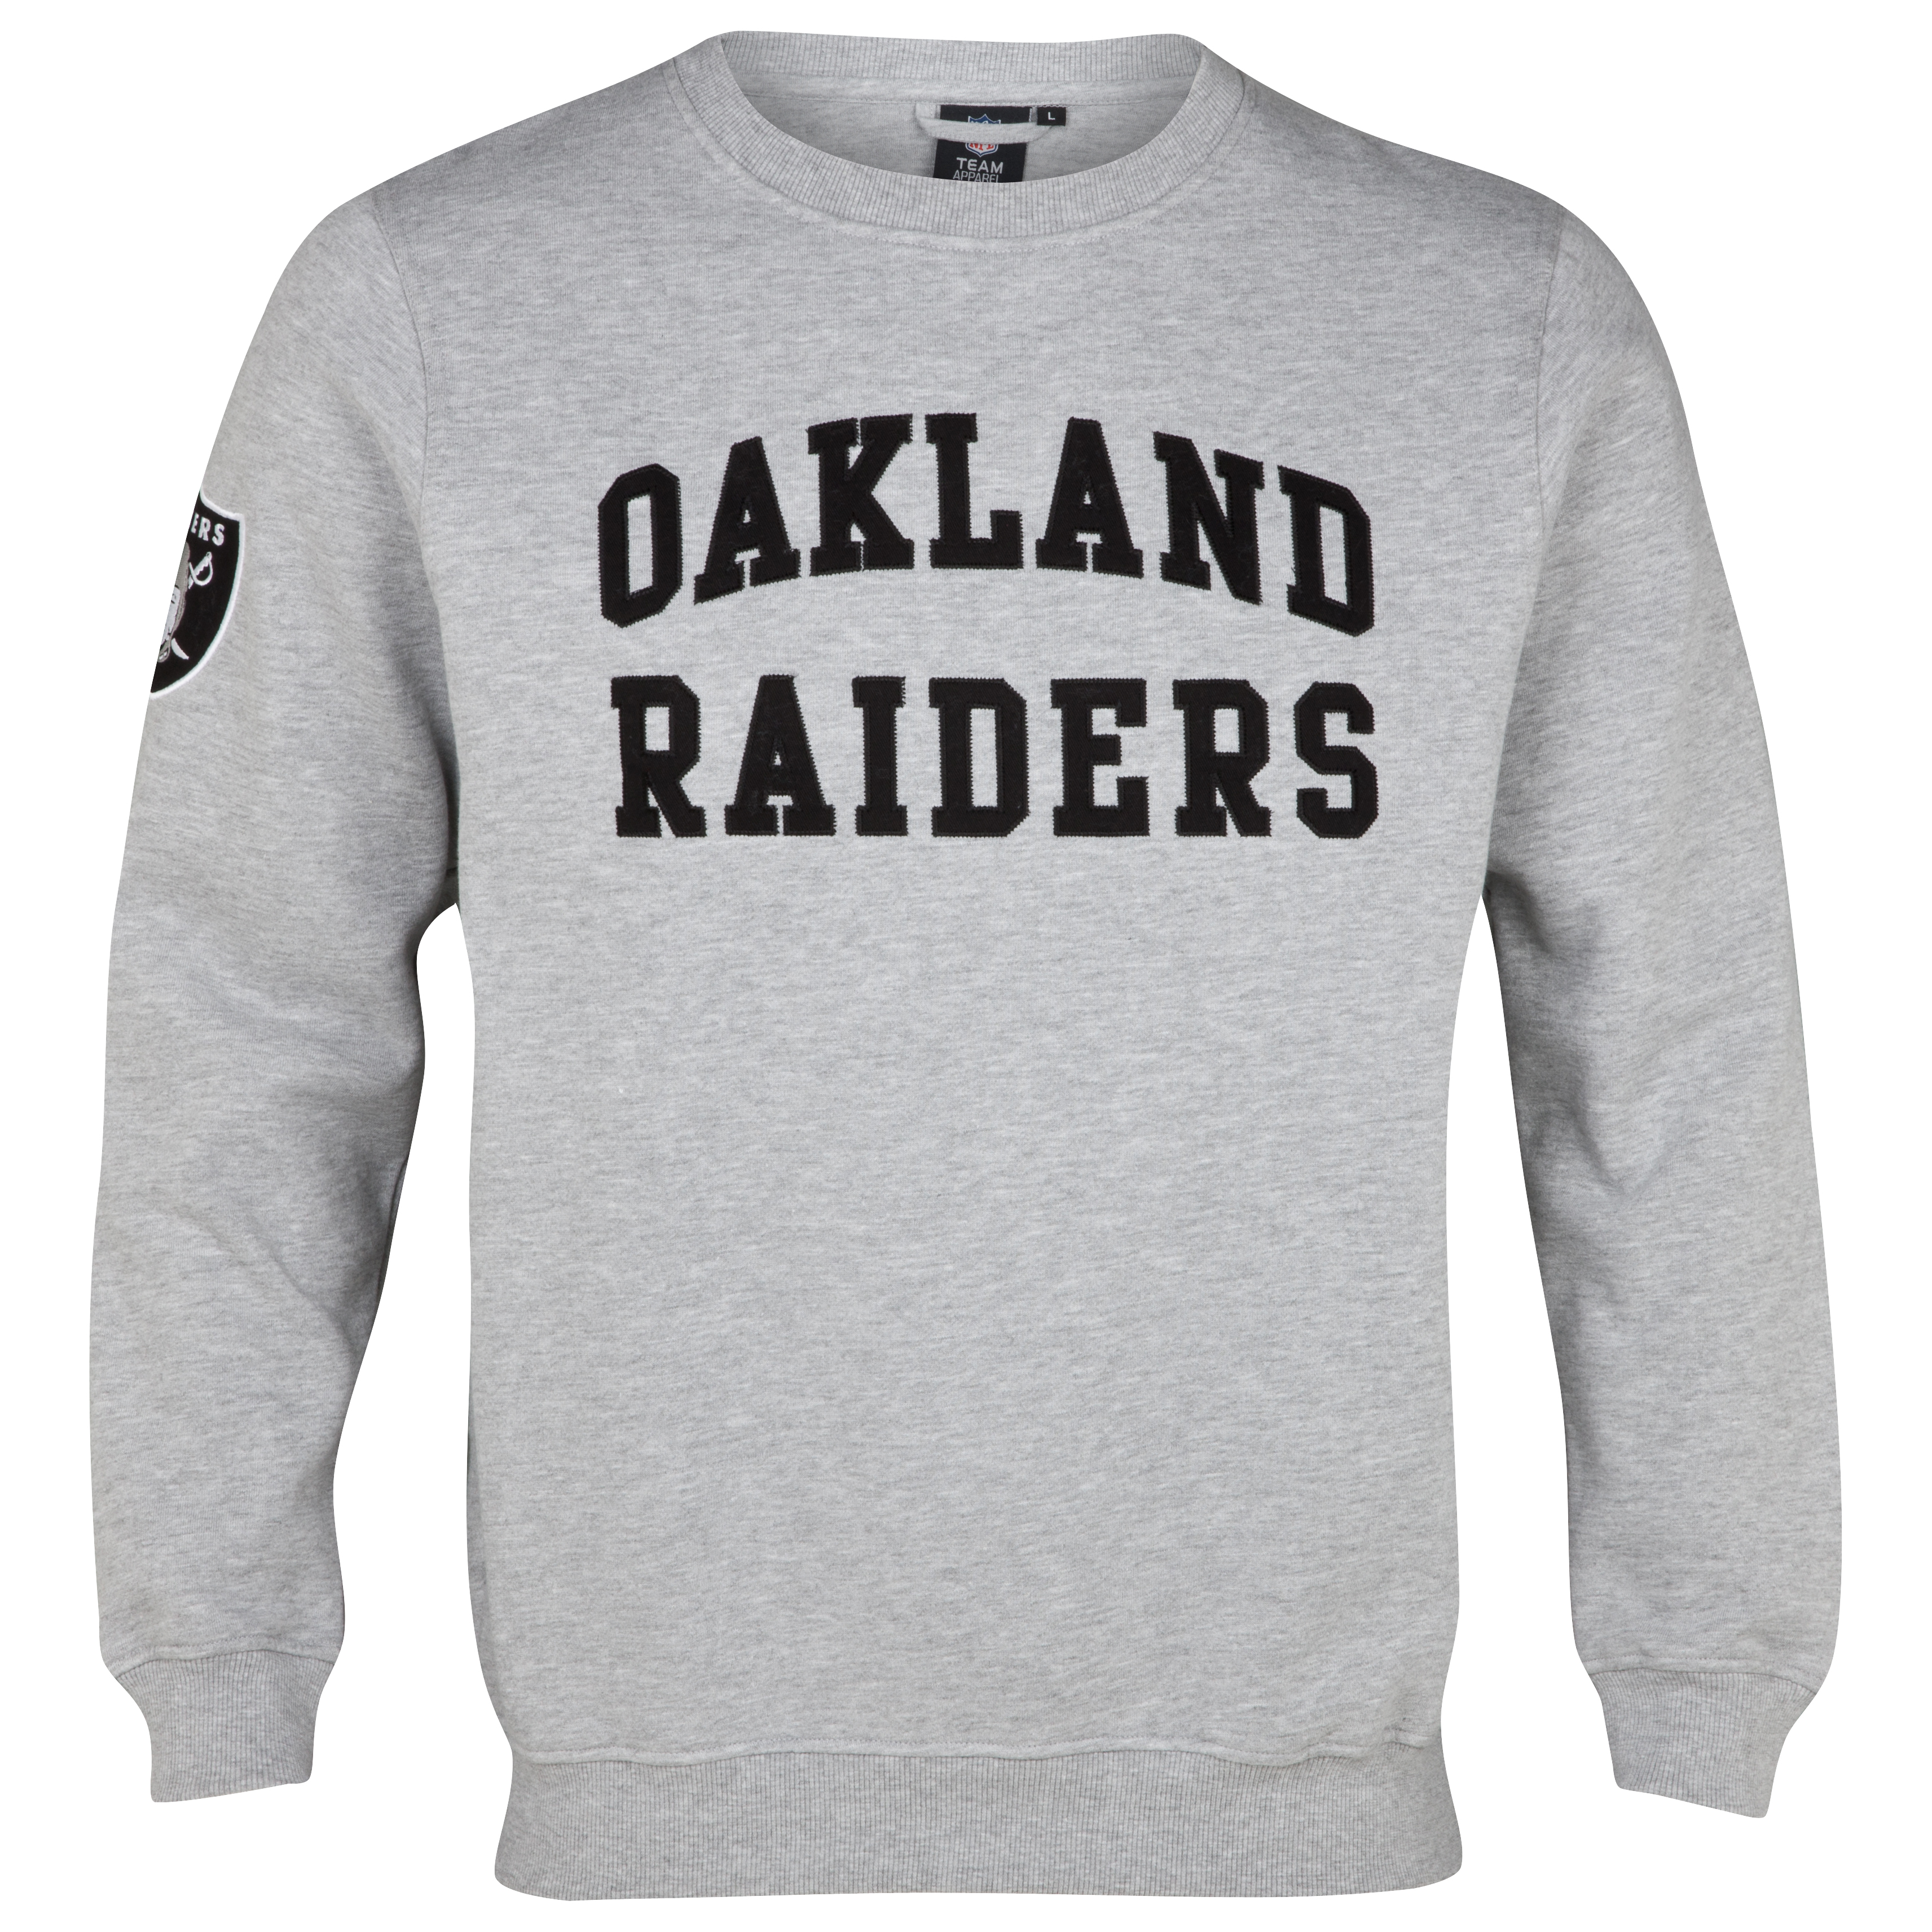 Oakland Raiders Collins Crew Neck Sweater - Silver Marl